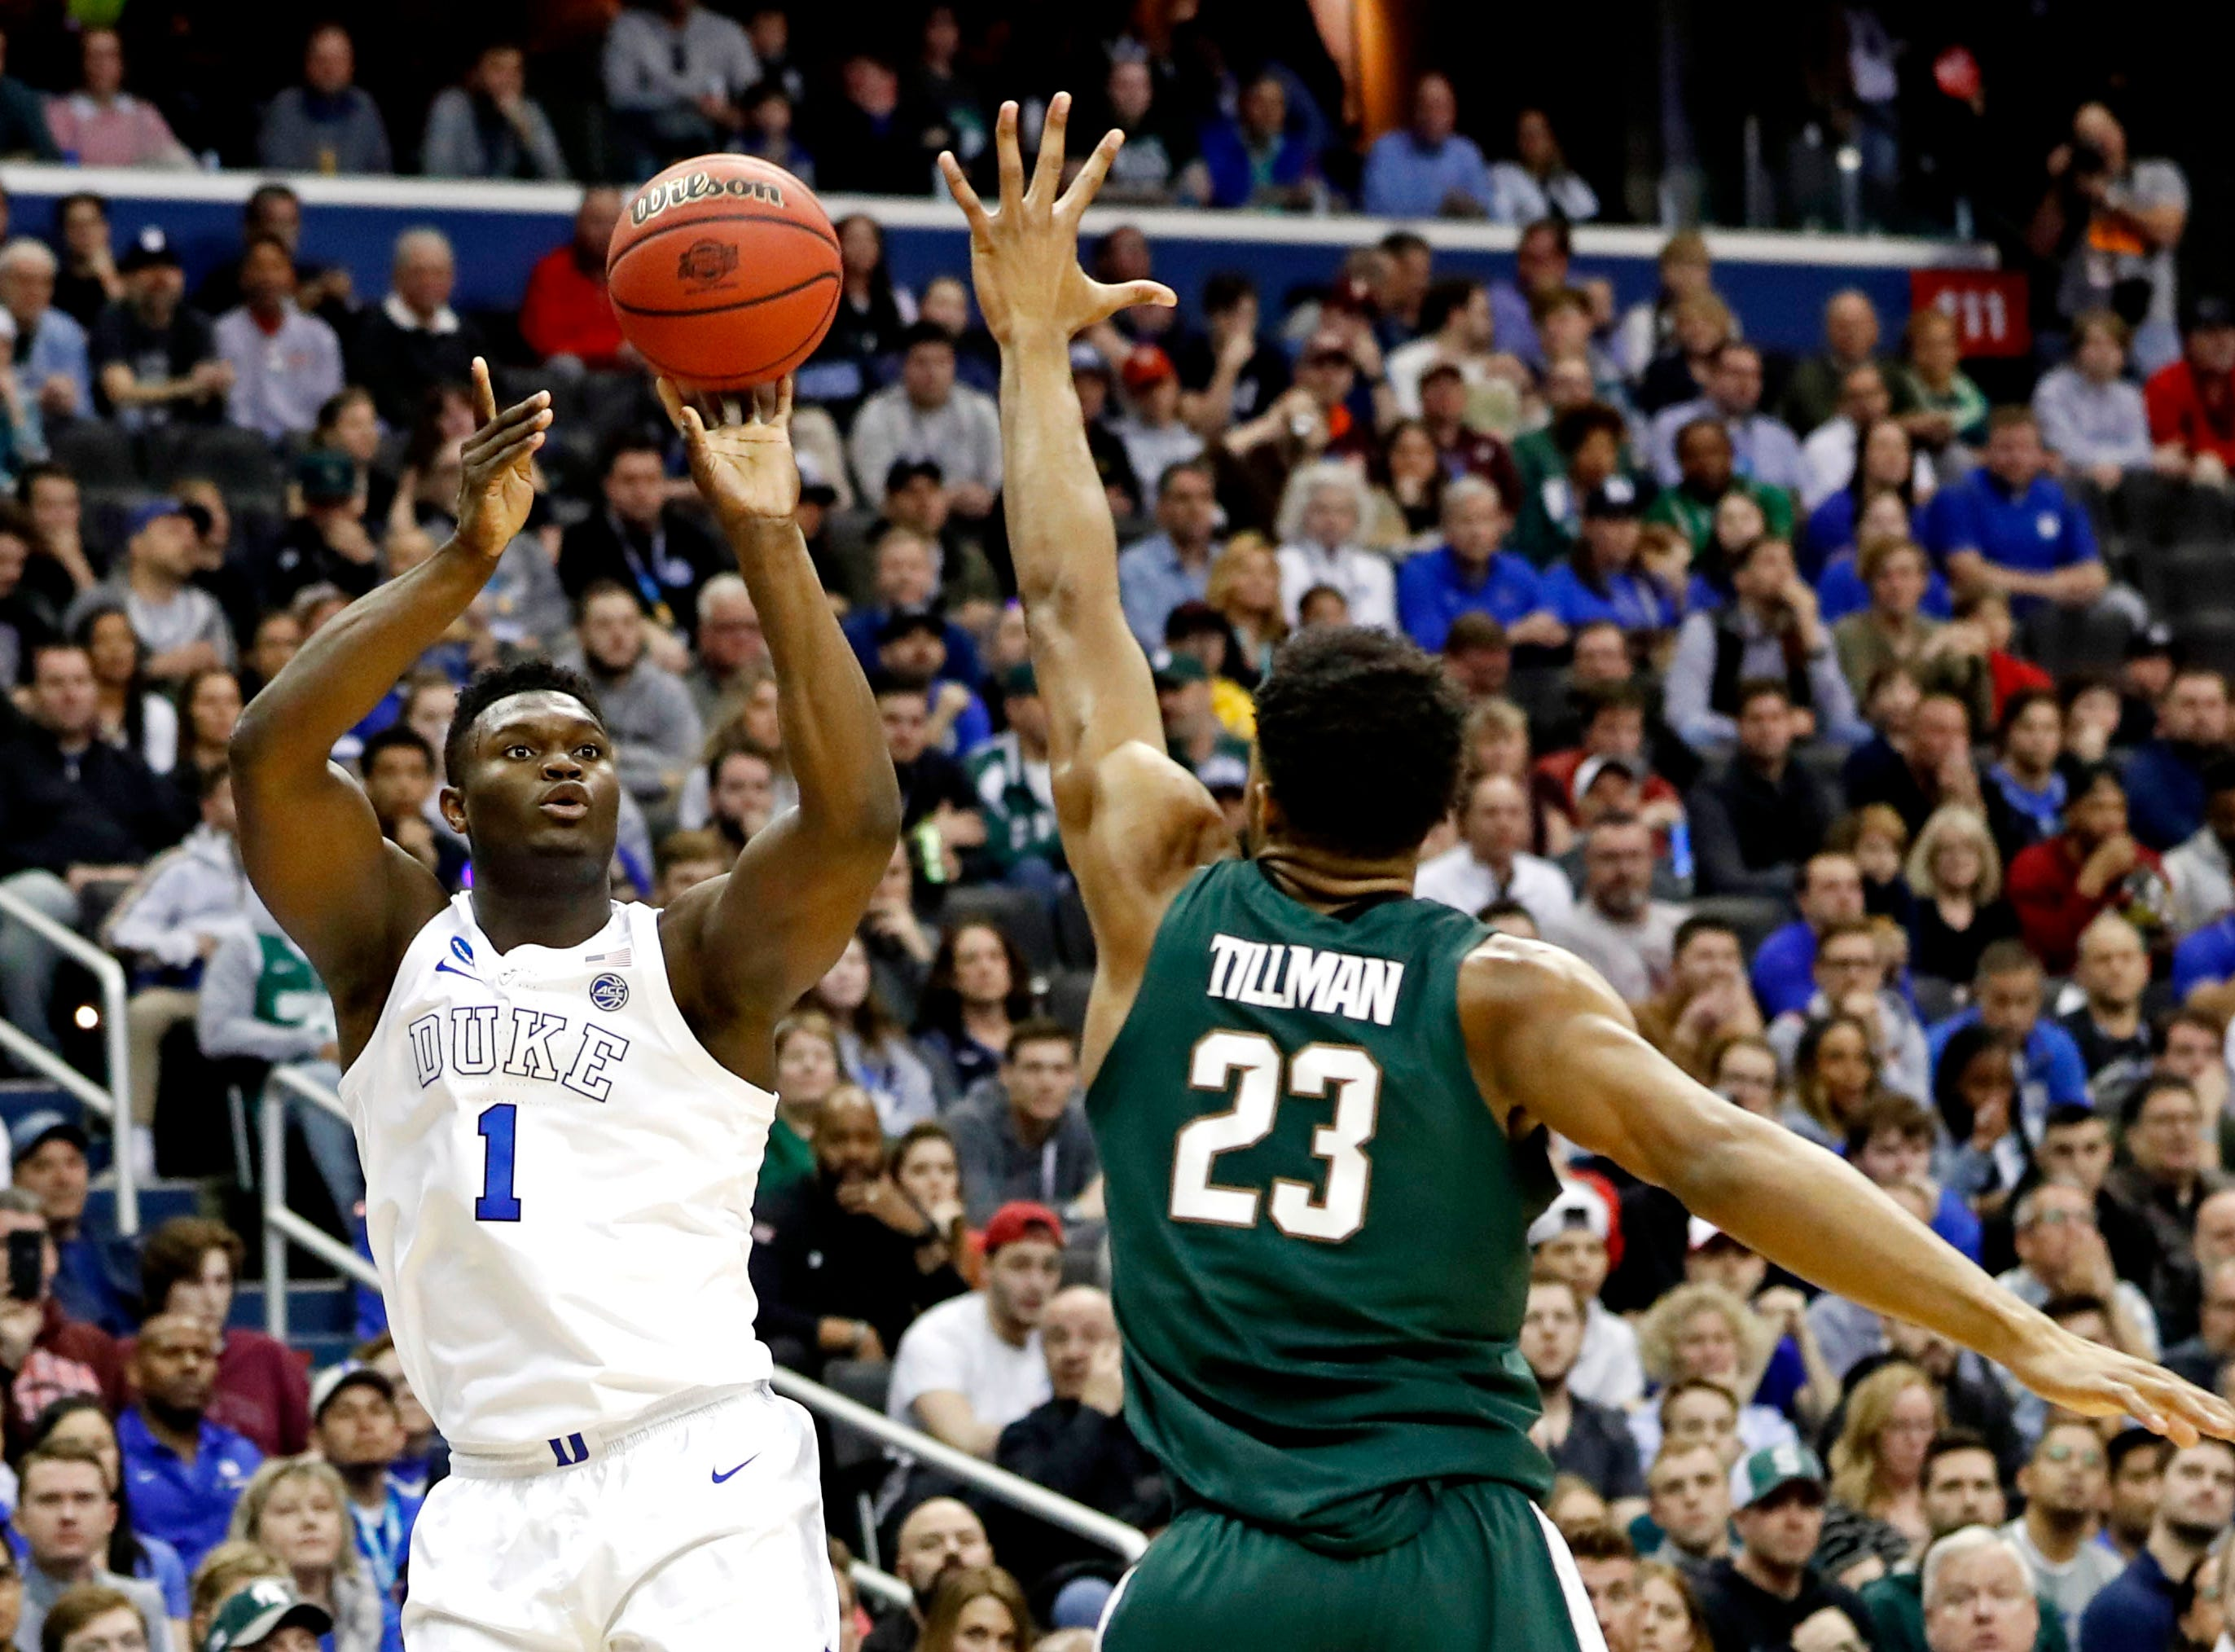 Duke Blue Devils forward Zion Williamson (1) shoots the ball against Michigan State Spartans forward Xavier Tillman (23) during the second half in the championship game of the east regional of the 2019 NCAA Tournament at Capital One Arena.